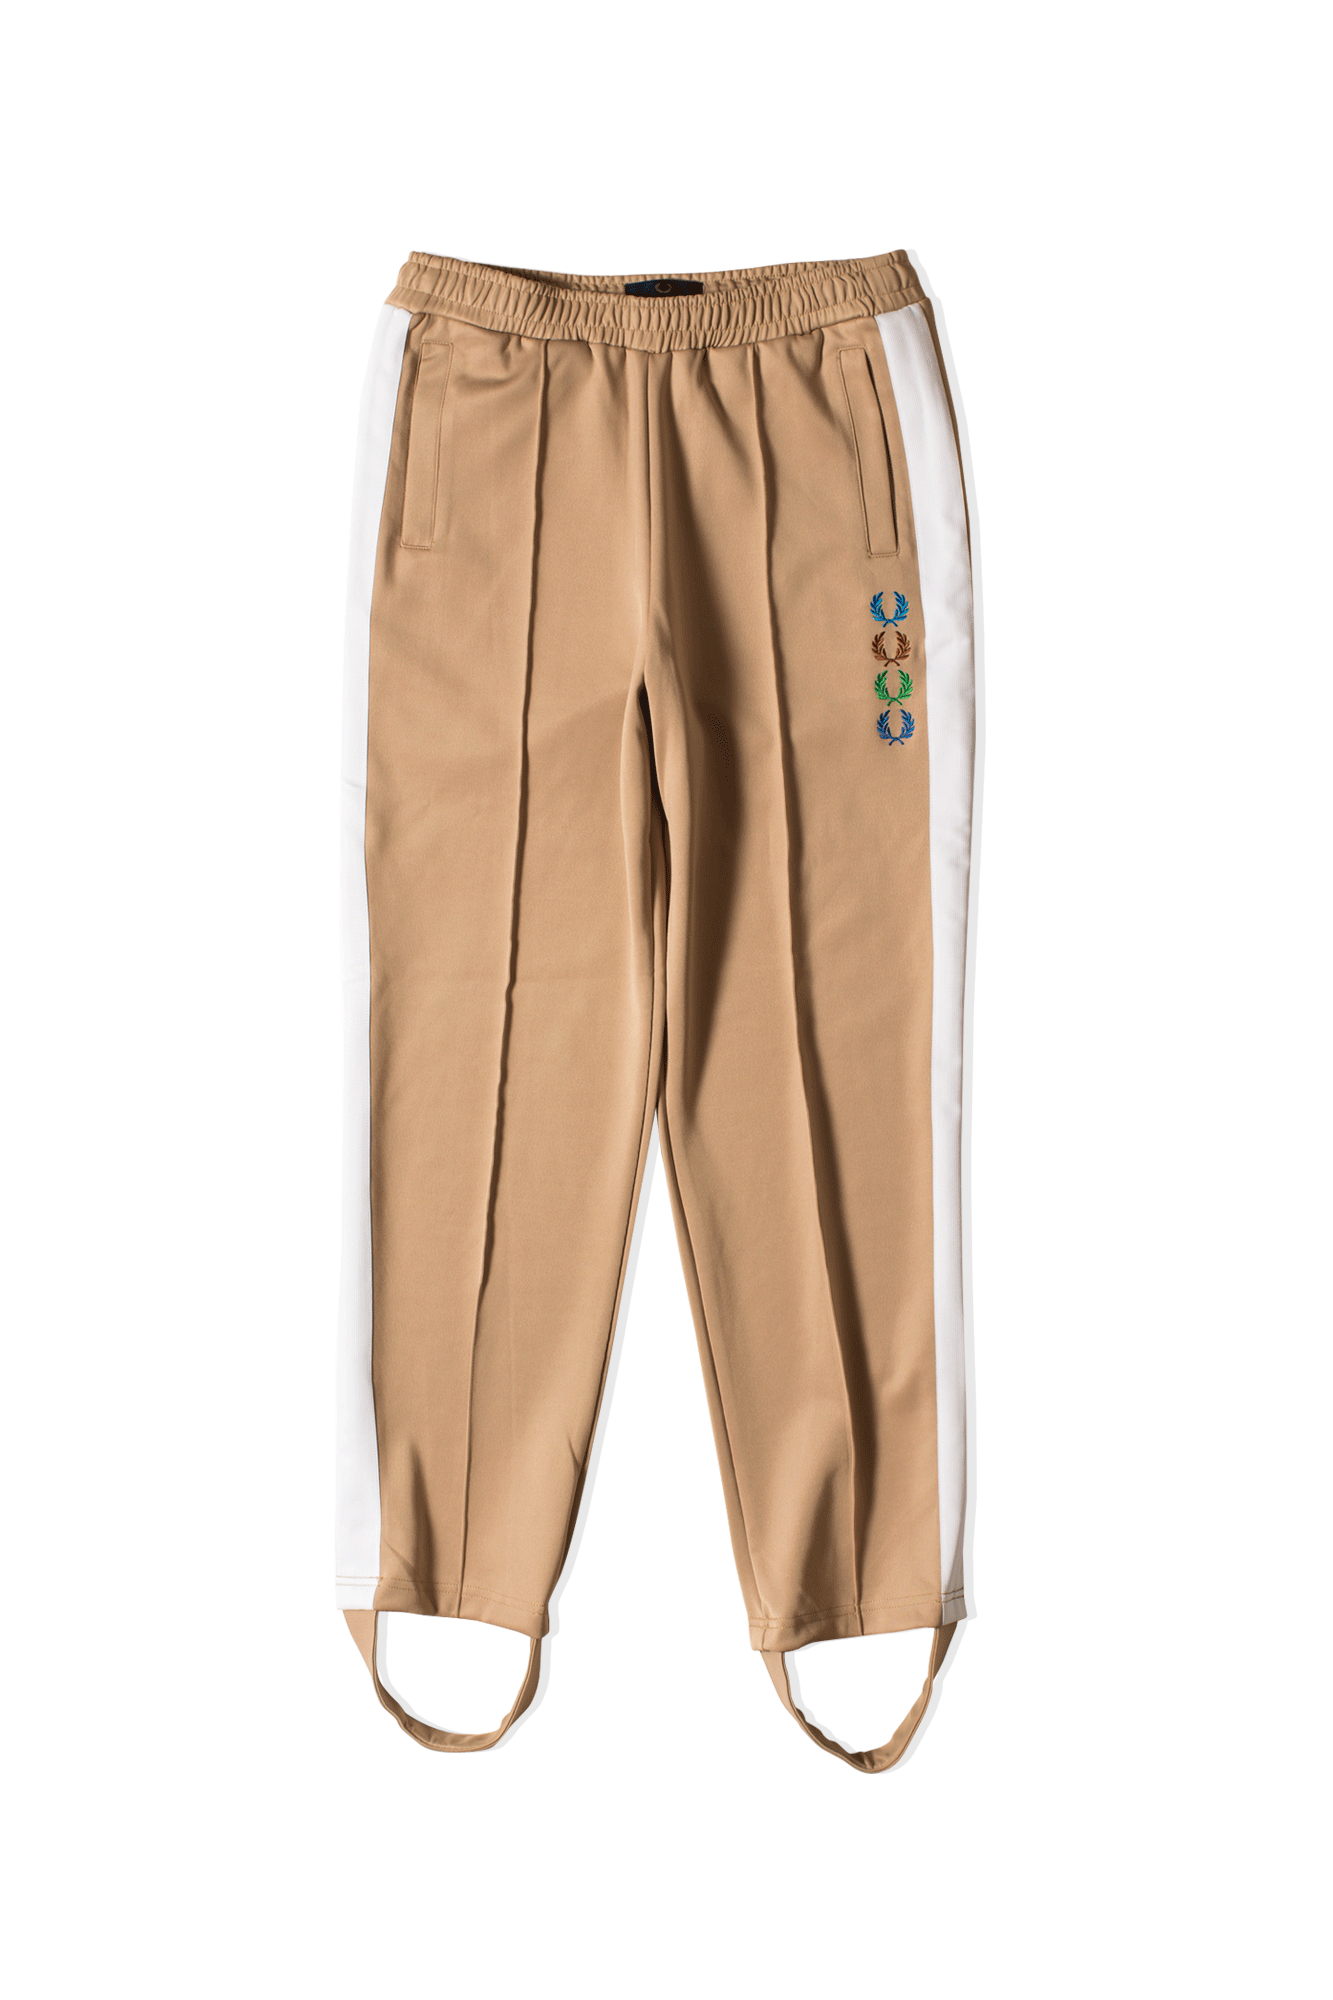 Taped Track Pants X Beams